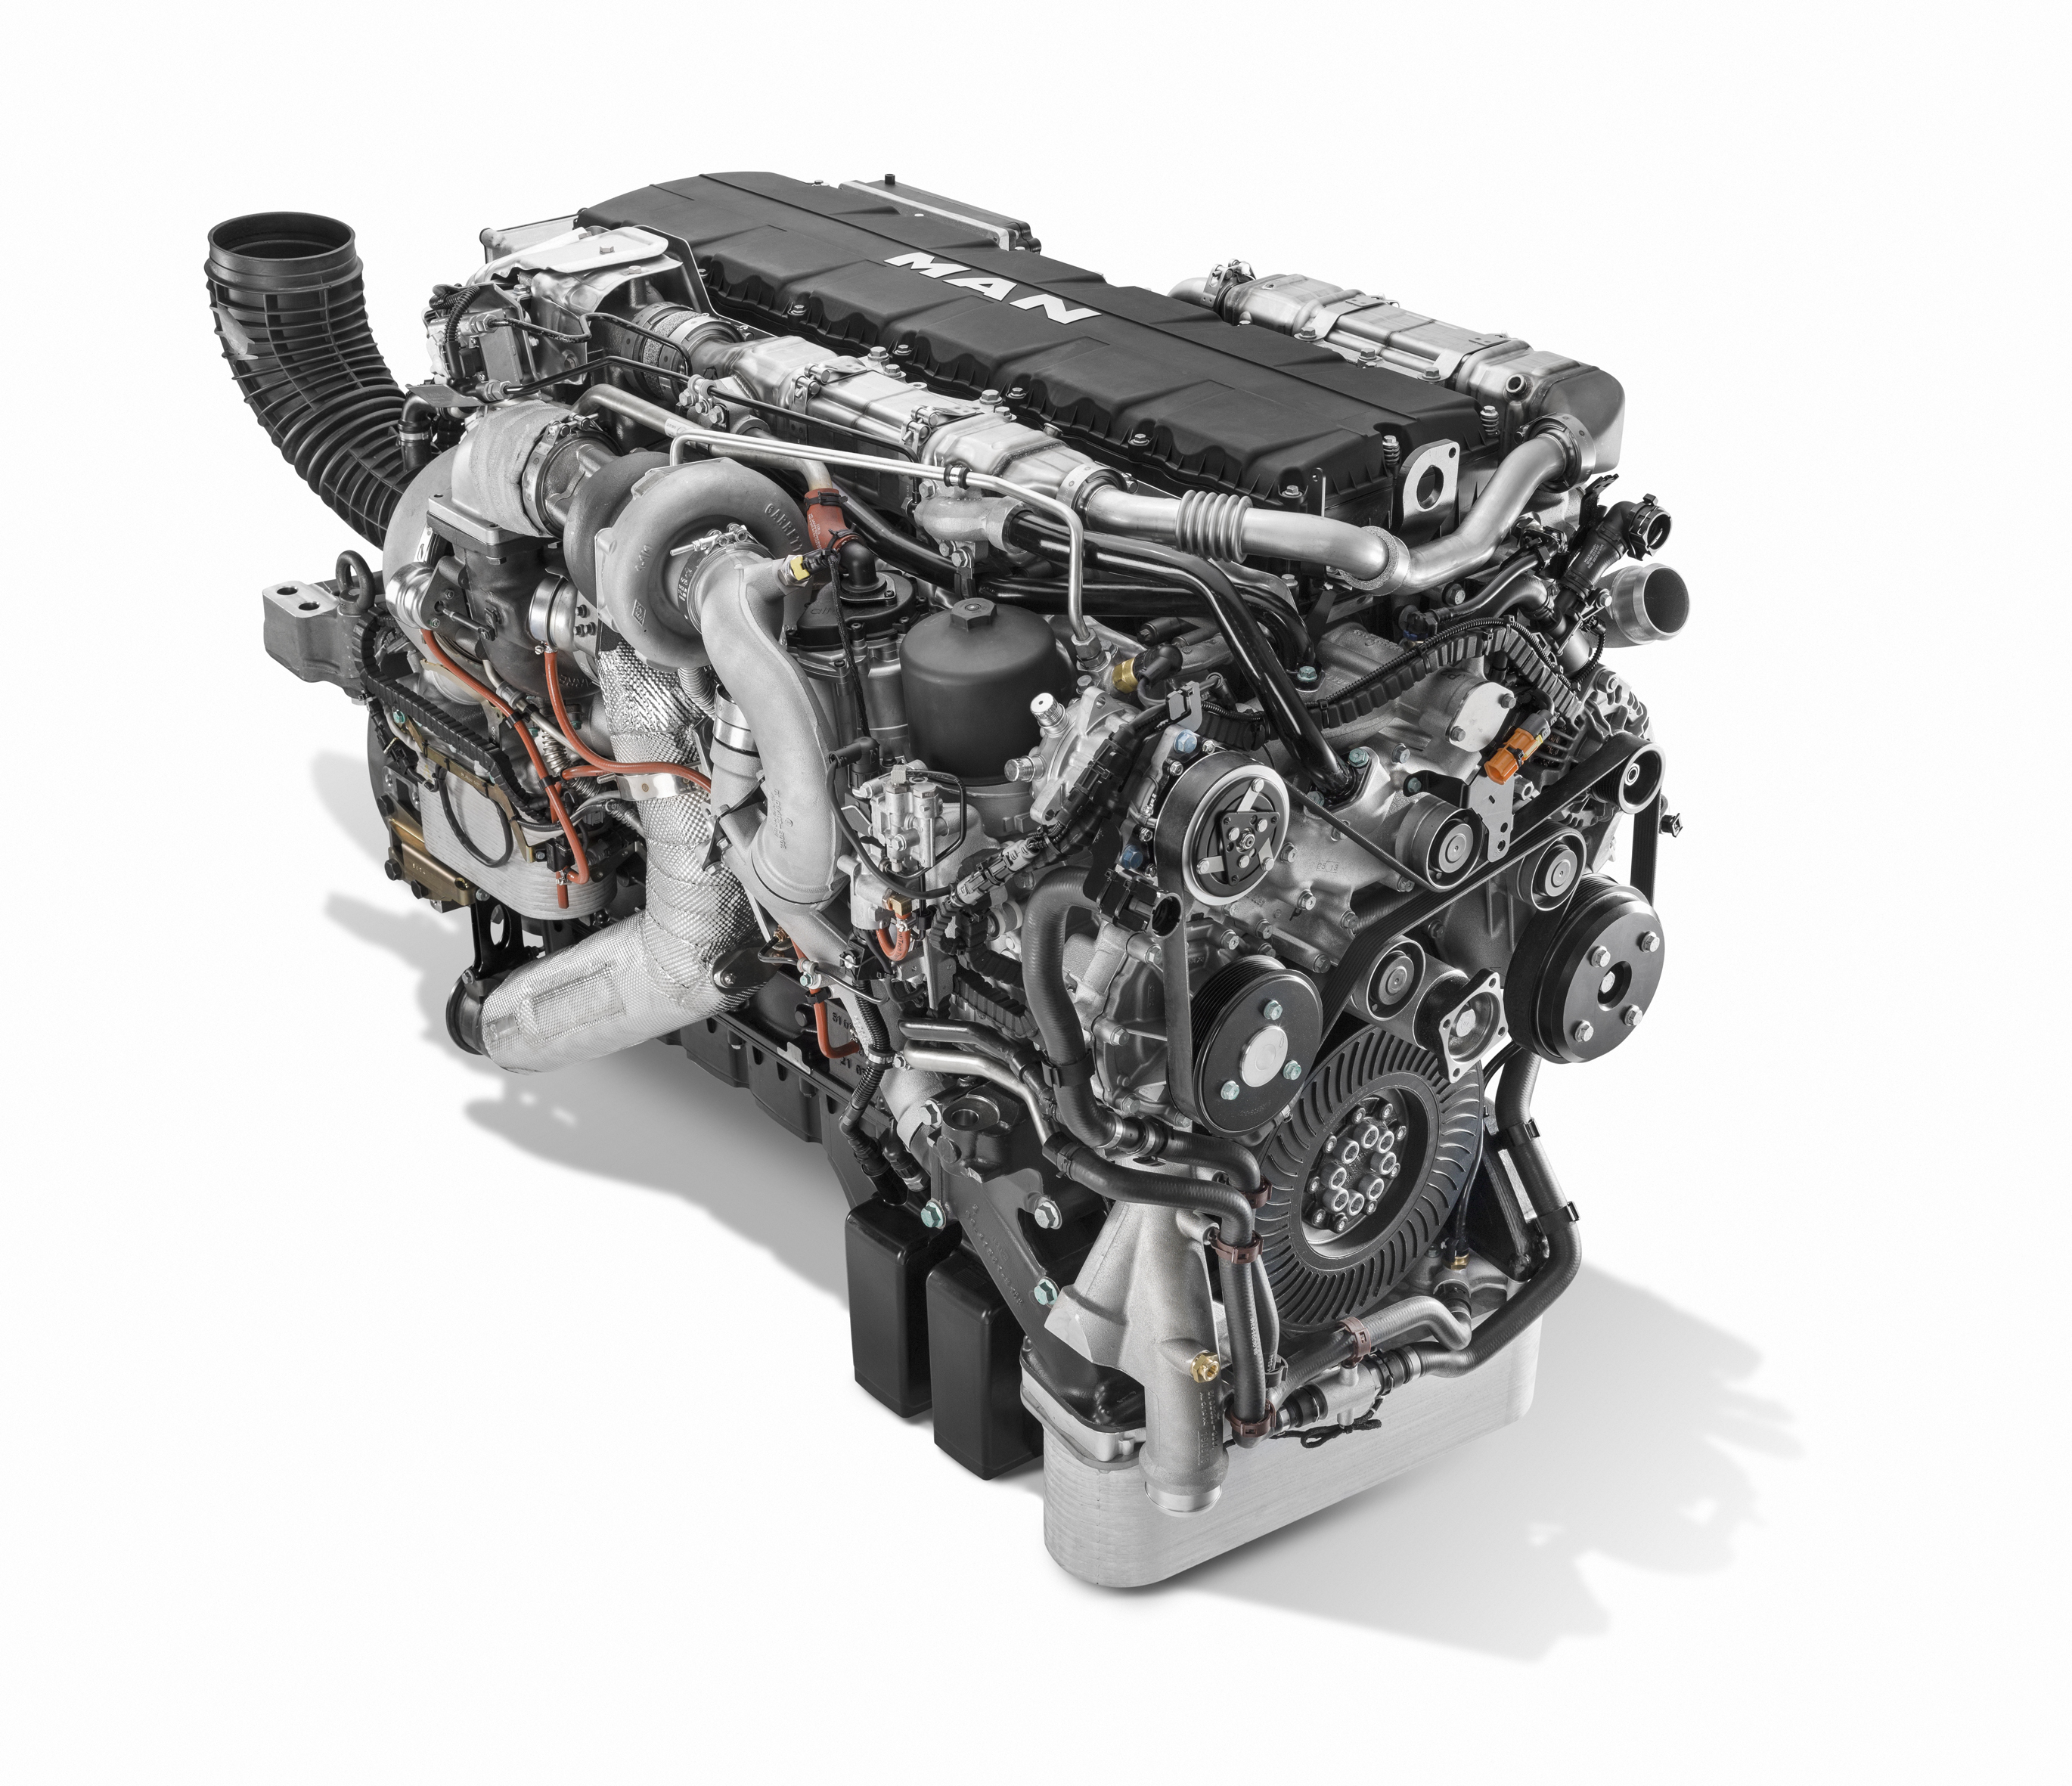 Best Car Engines Without Problems